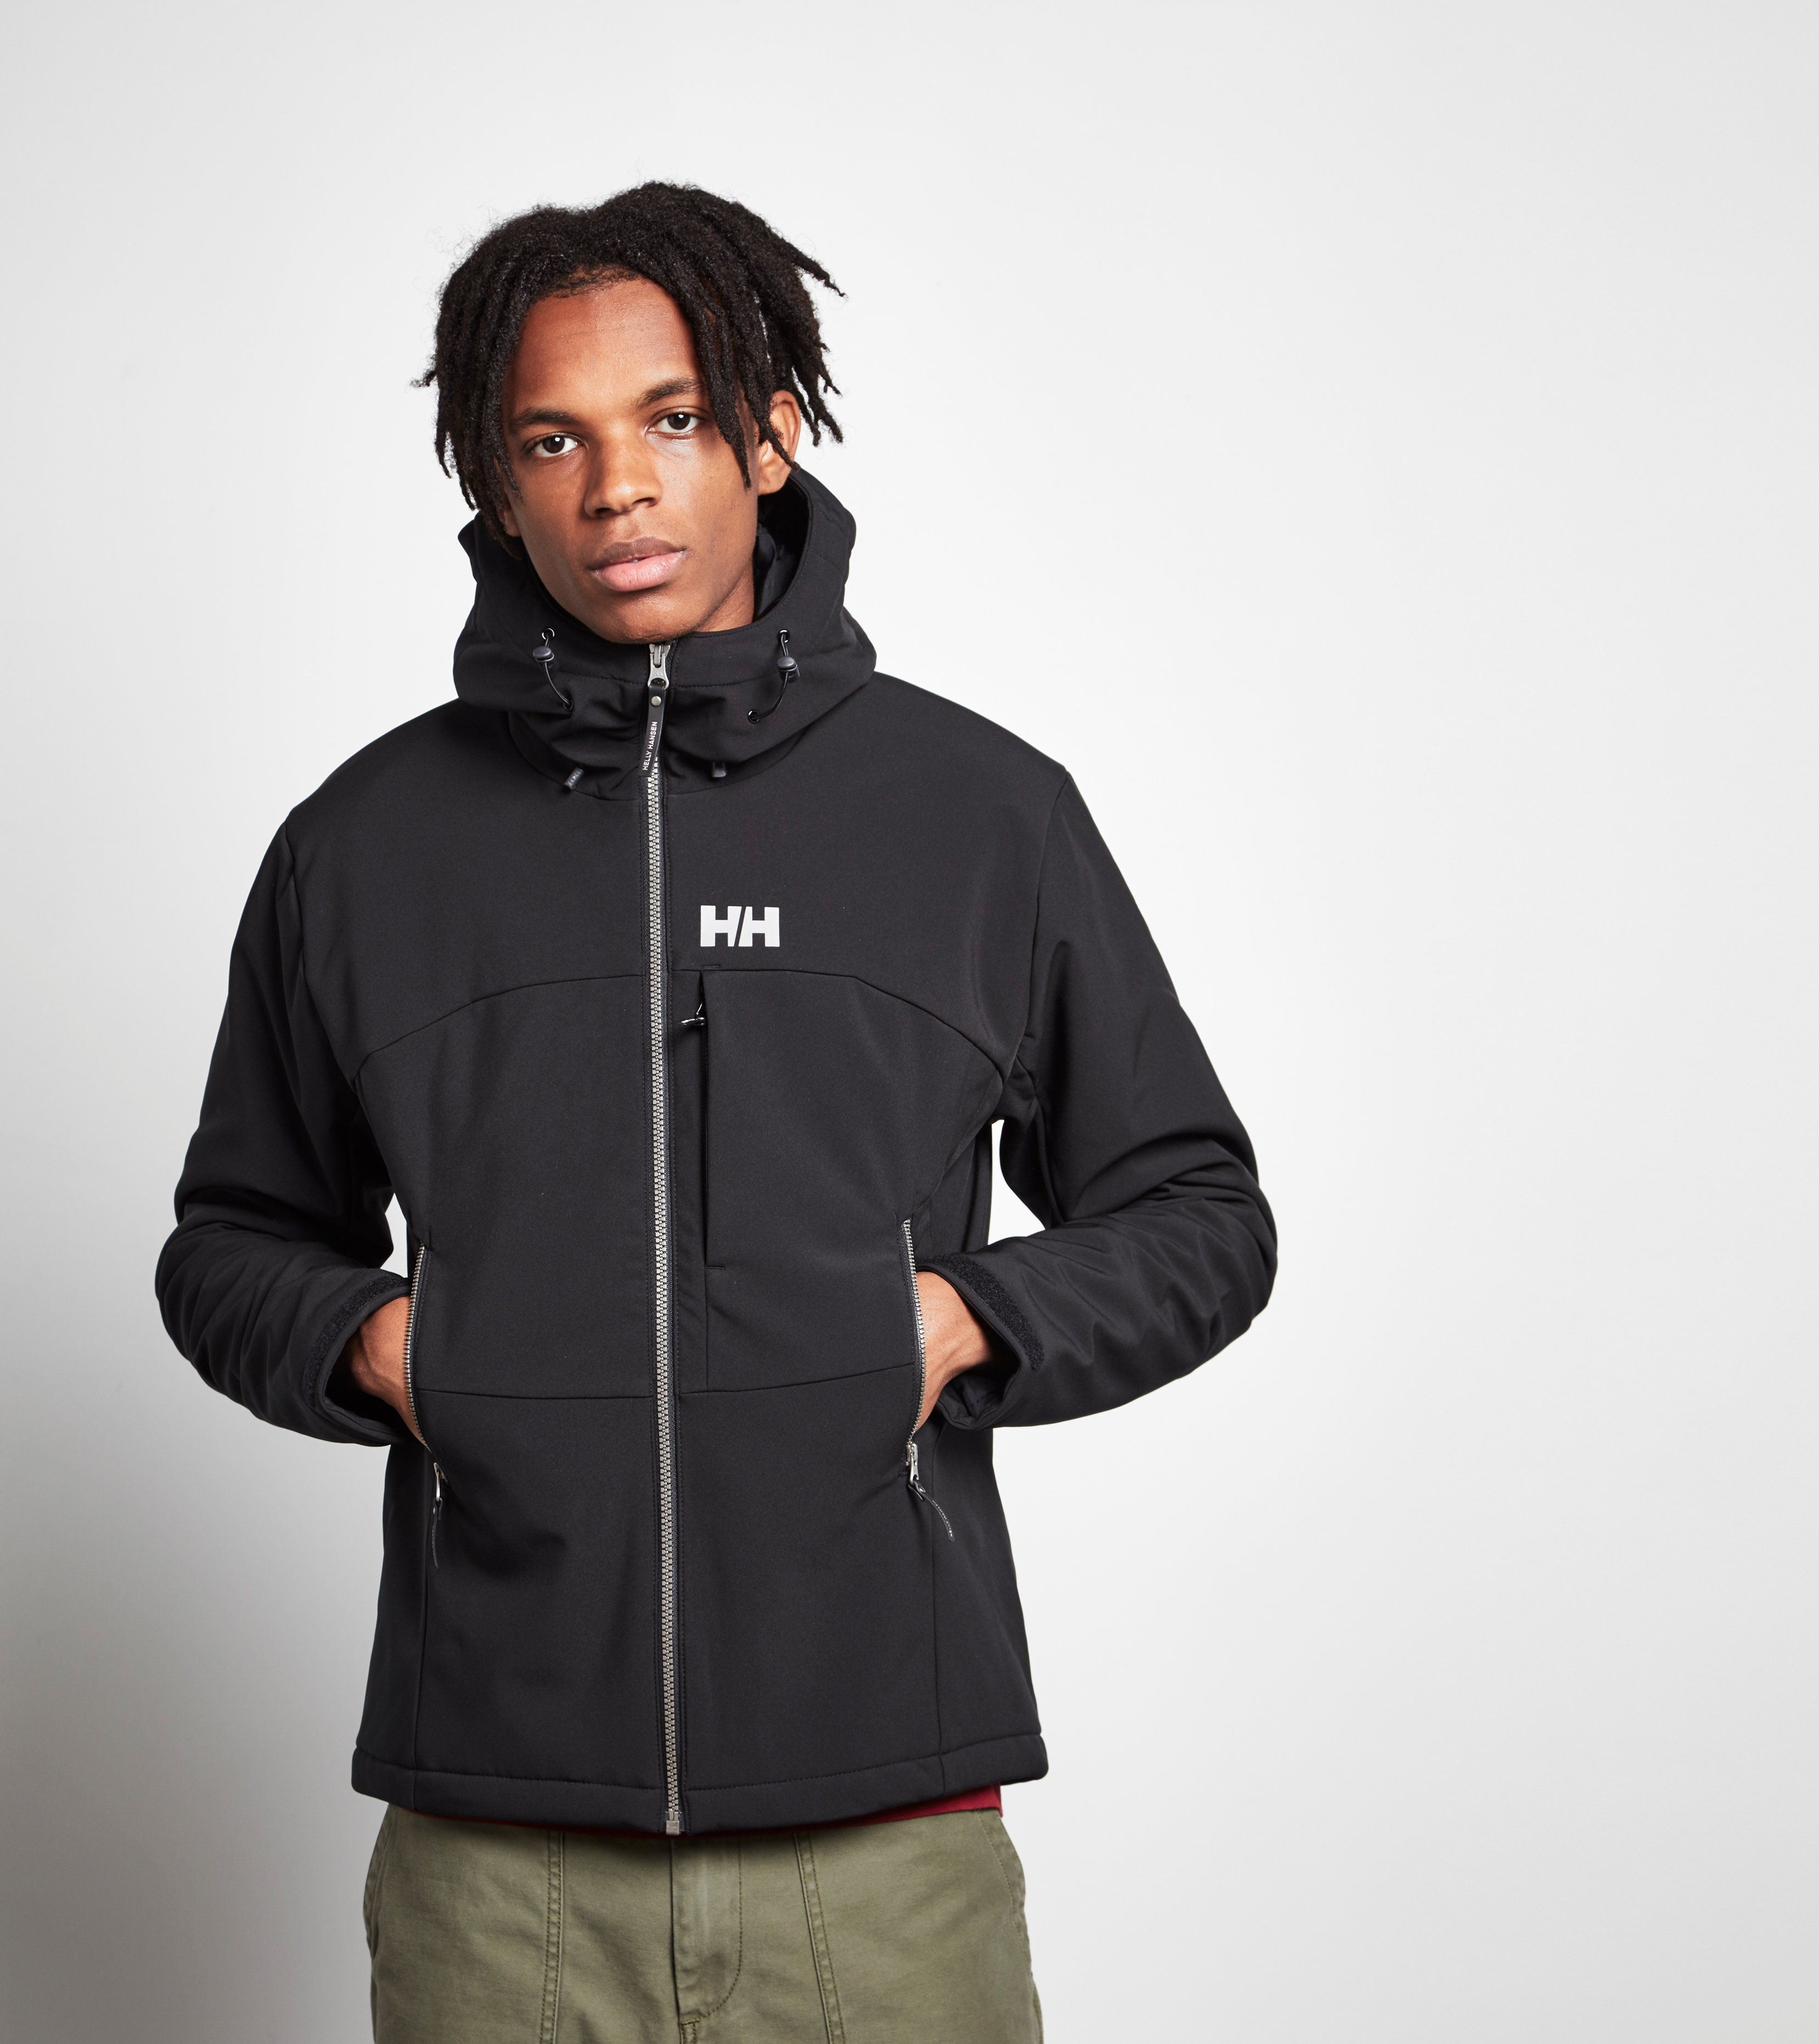 a1180a7758 Helly Hansen Paramount Insulated Softshell Jacket | Size?